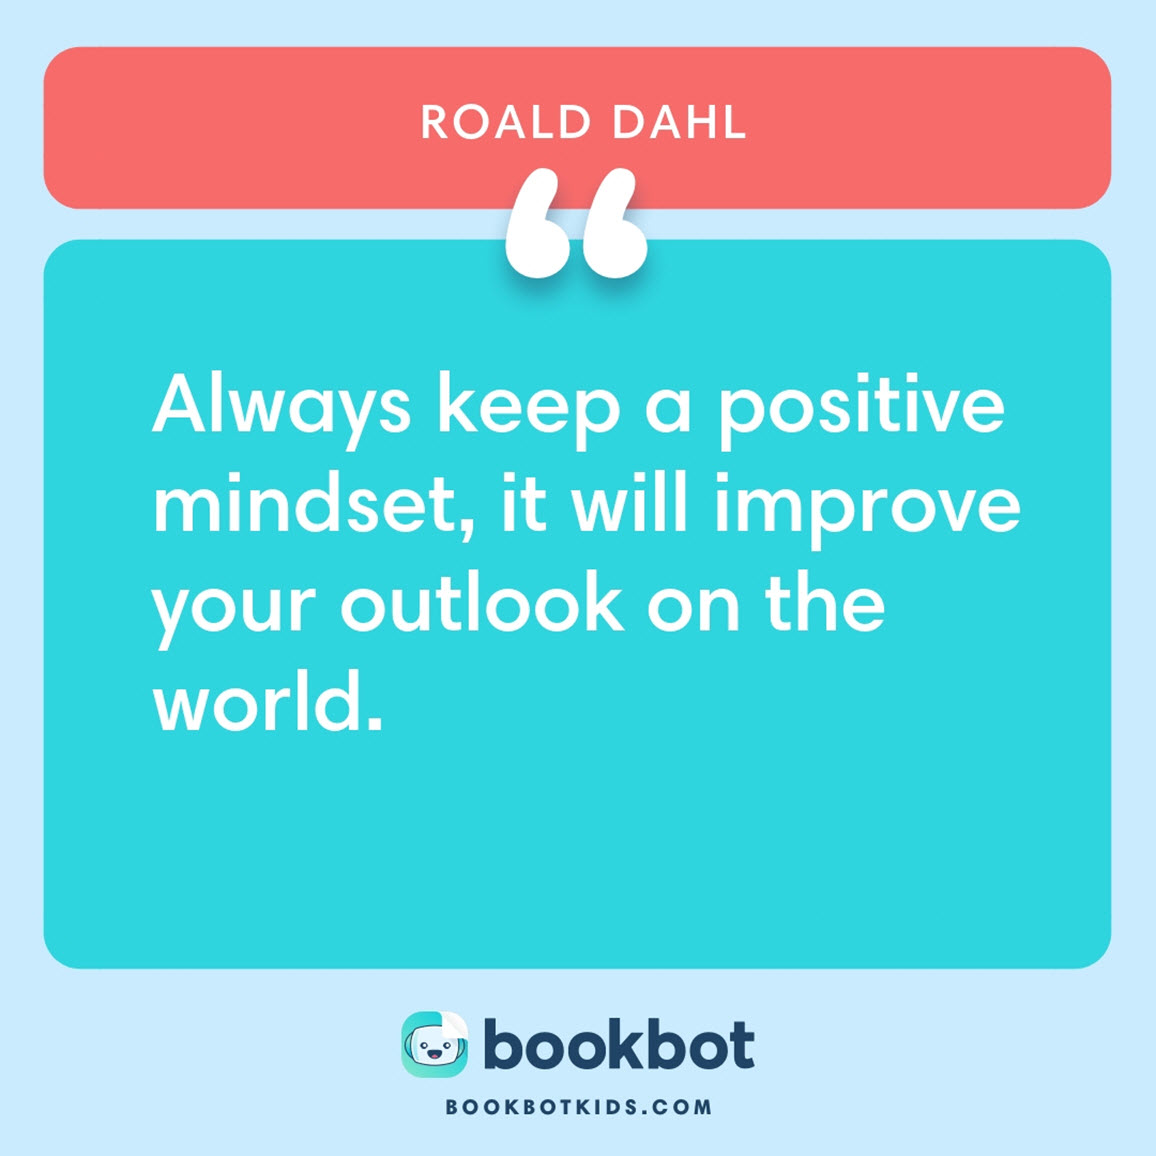 Always keep a positive mindset, it will improve your outlook on the world. – Roald Dahl